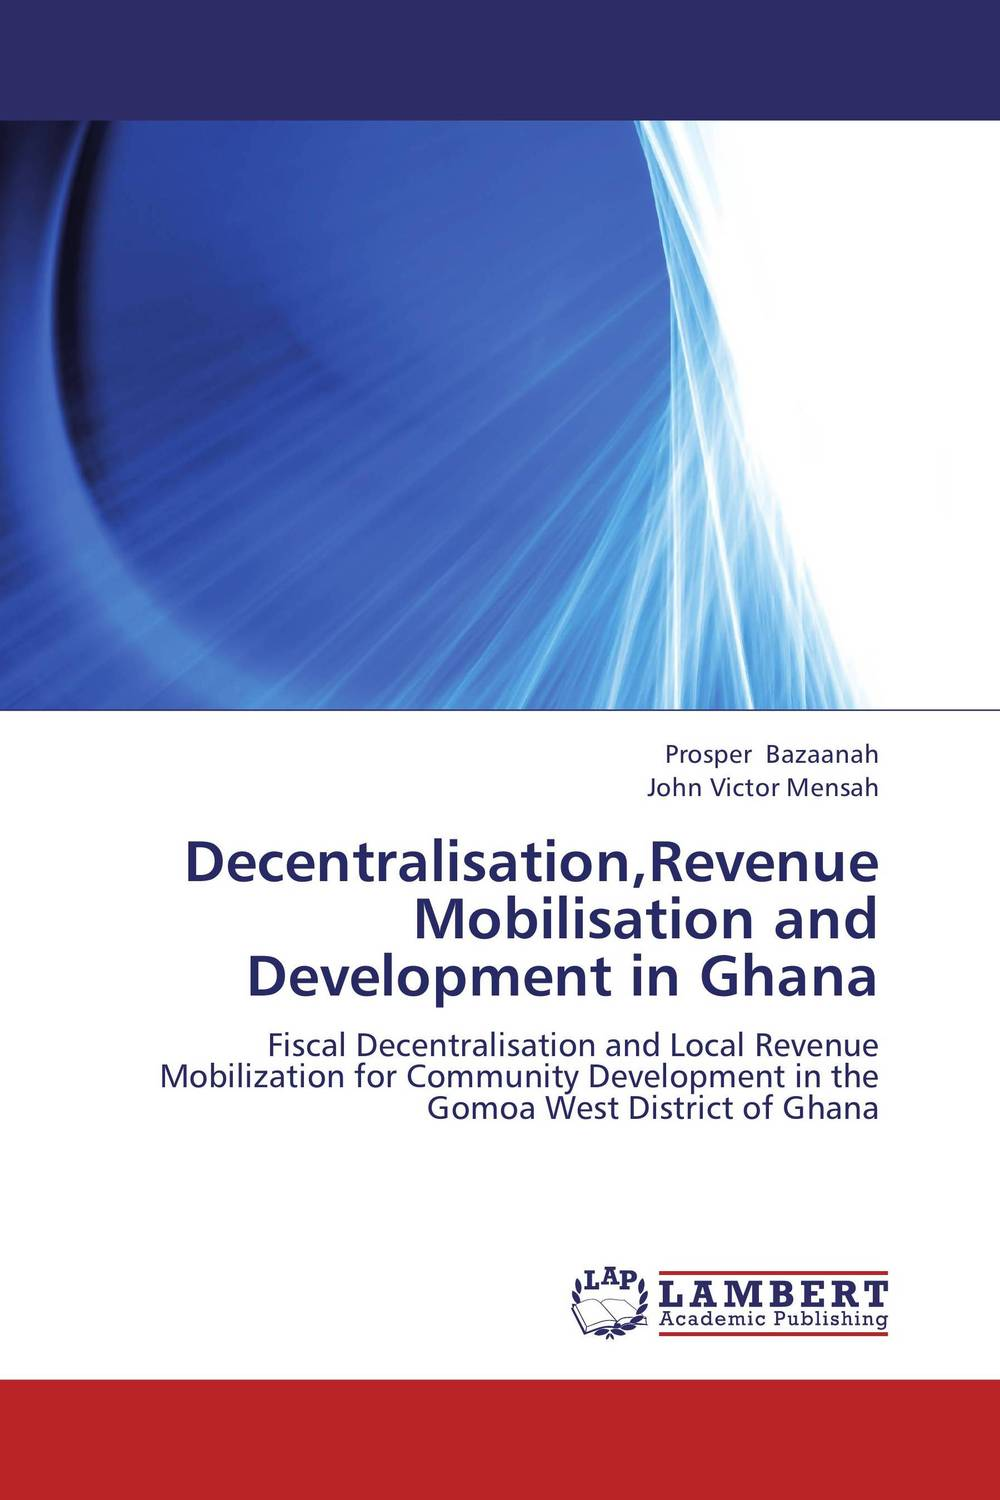 Decentralisation,Revenue Mobilisation and Development in Ghana maxwell musingafi raphinos alexander chabaya and emmanuel dumbu groups and community mobilisation for development